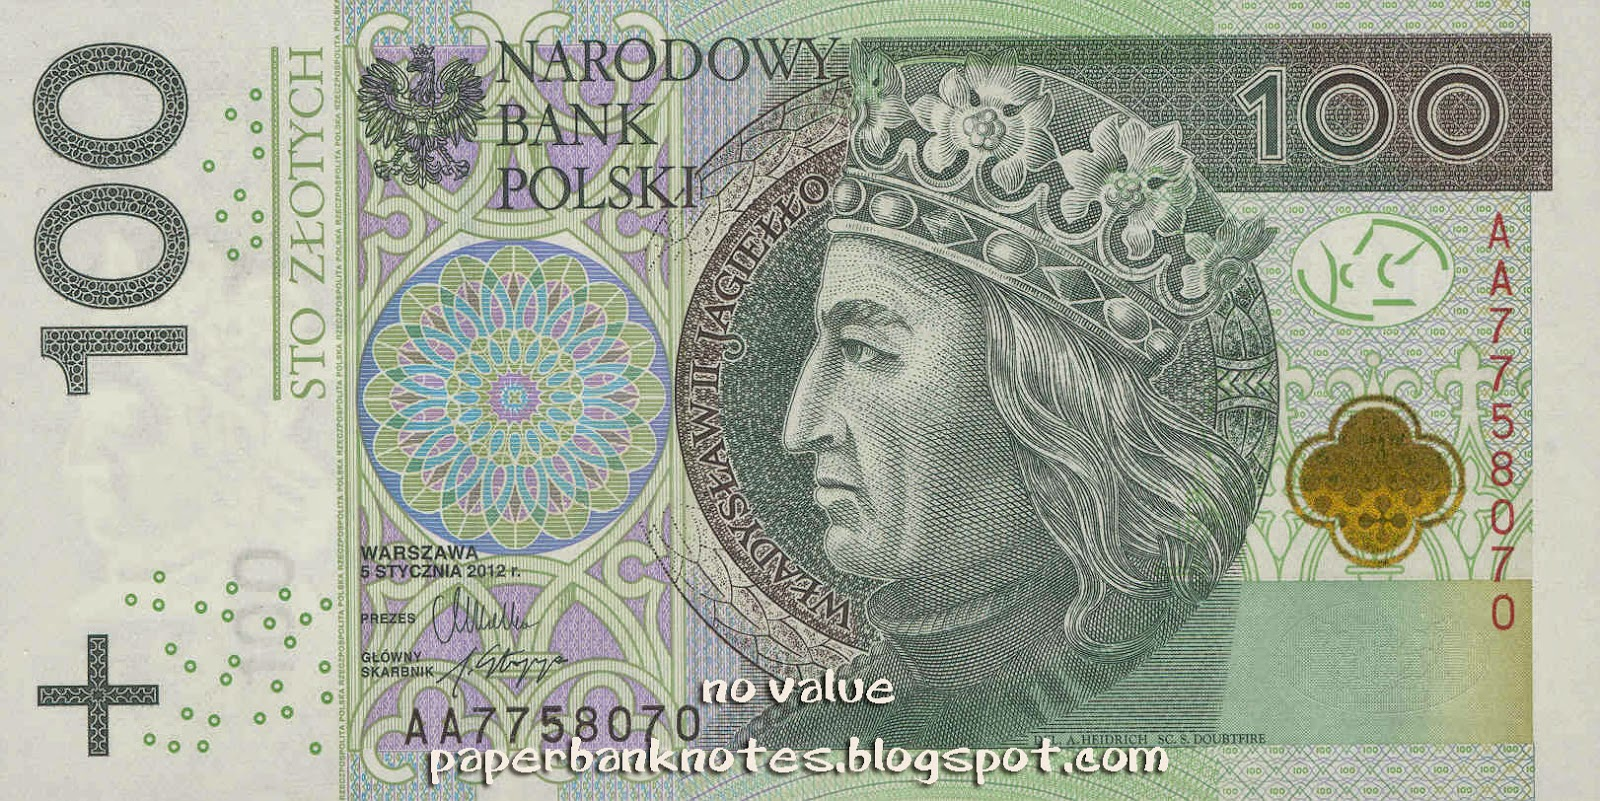 http://europebanknotes.blogspot.com/2014/06/poland-2012-2014-new-issues-aa-prefix.html